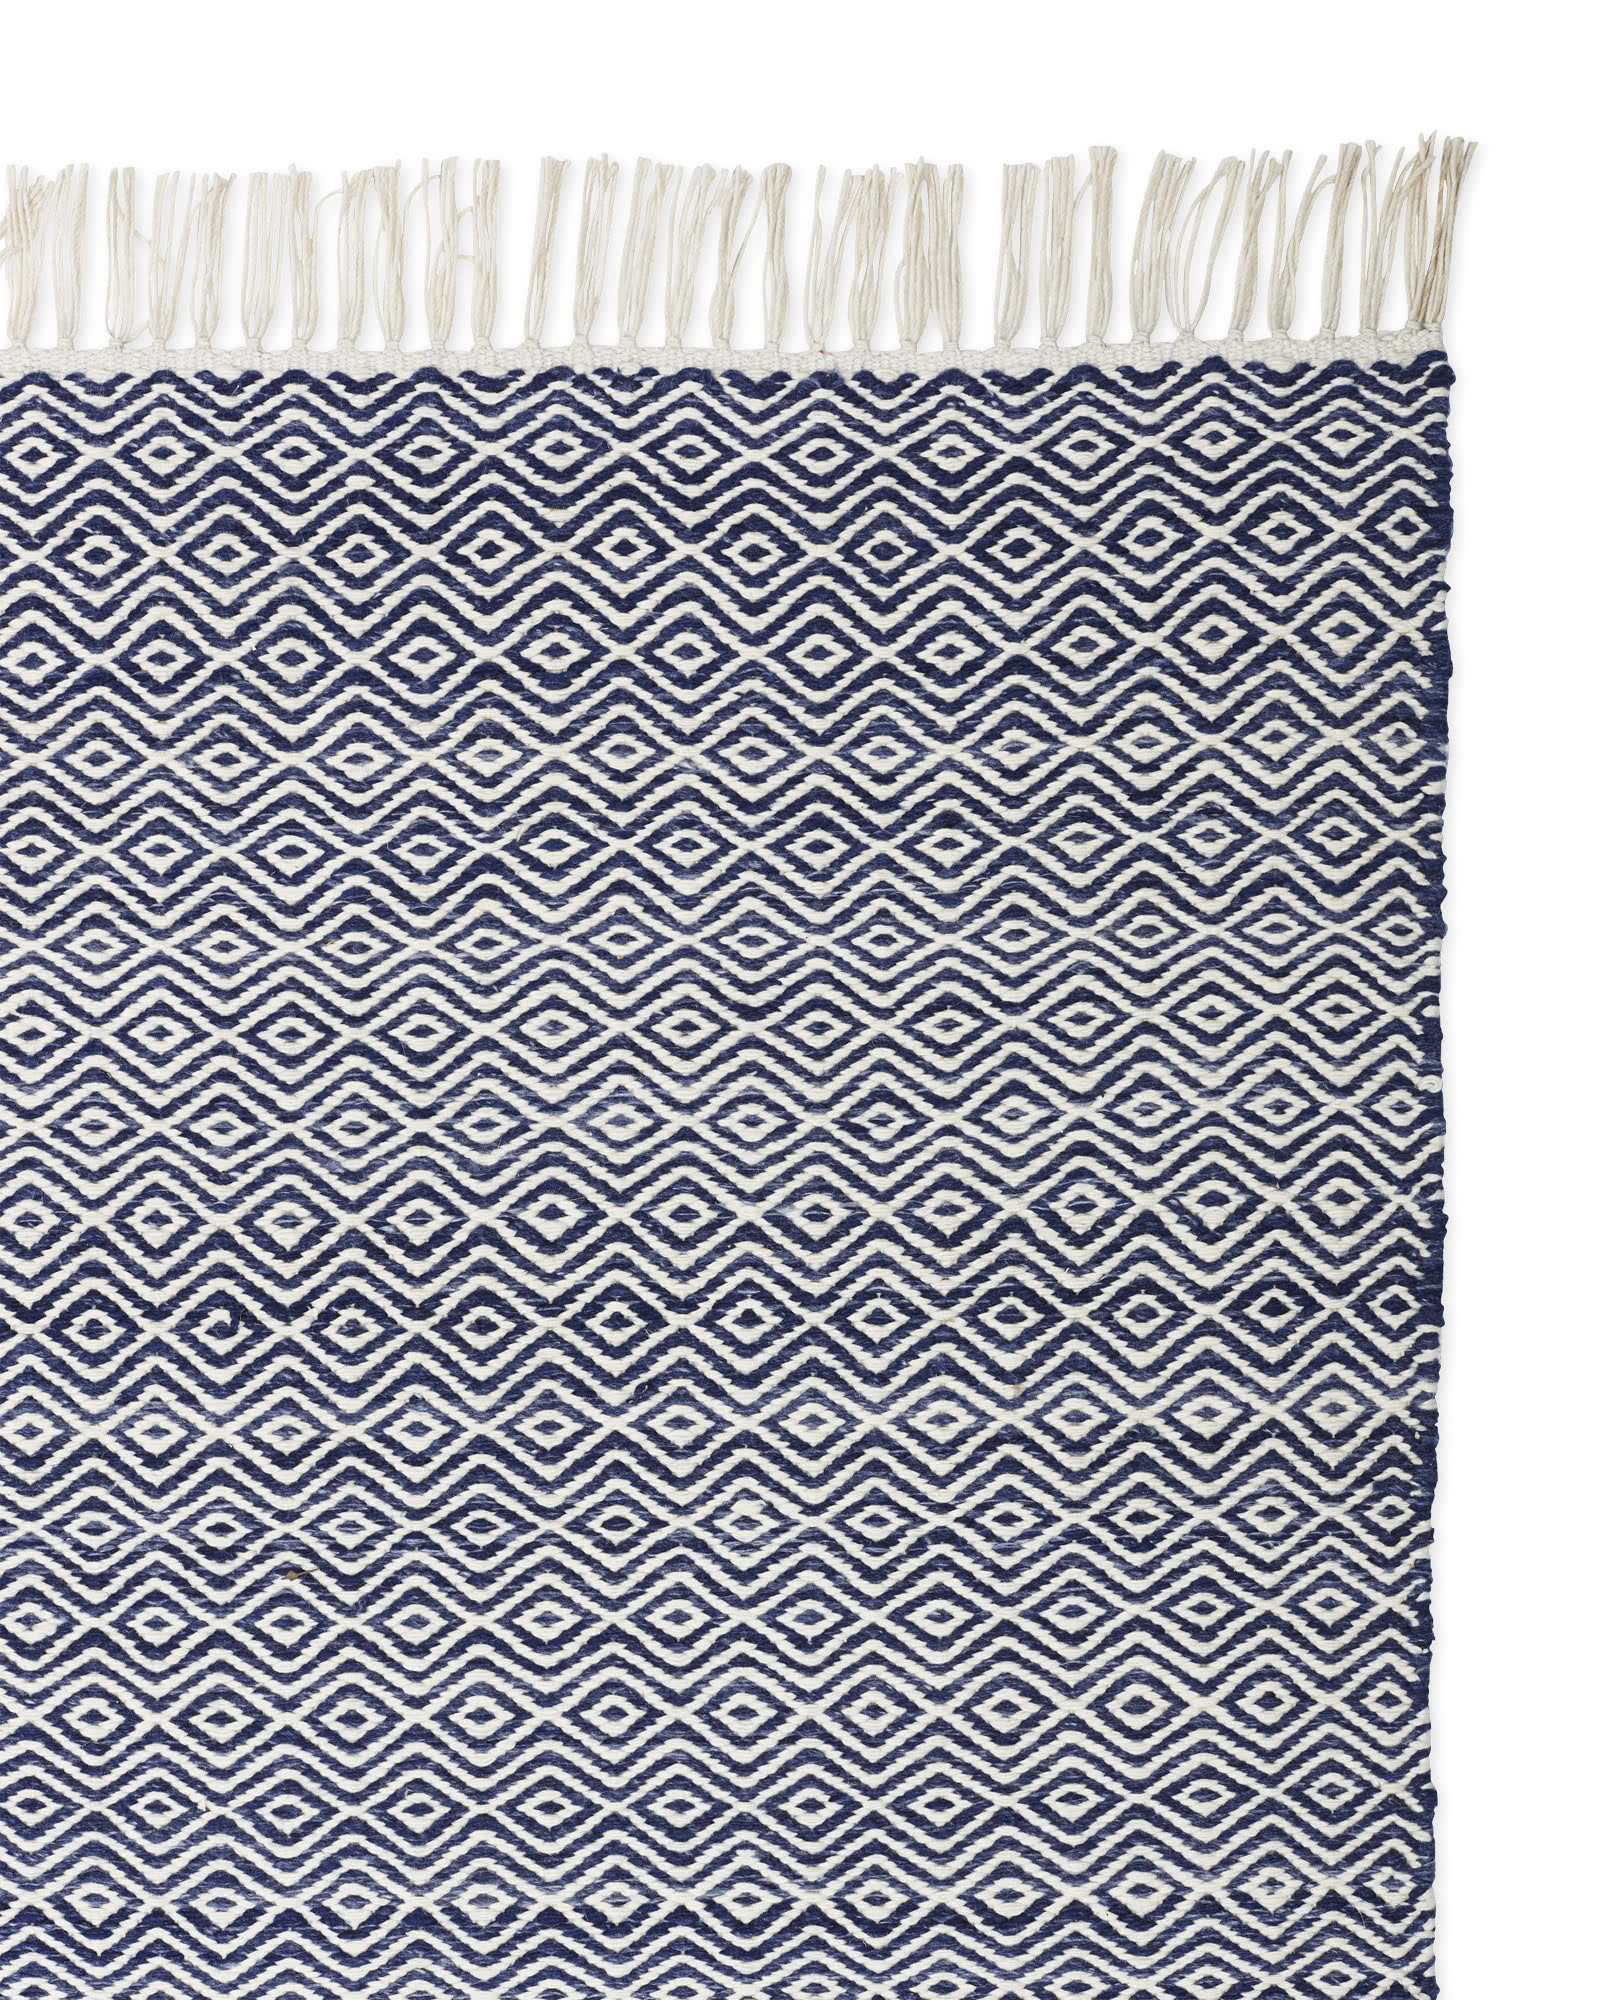 Seaview Rug Swatch, Navy